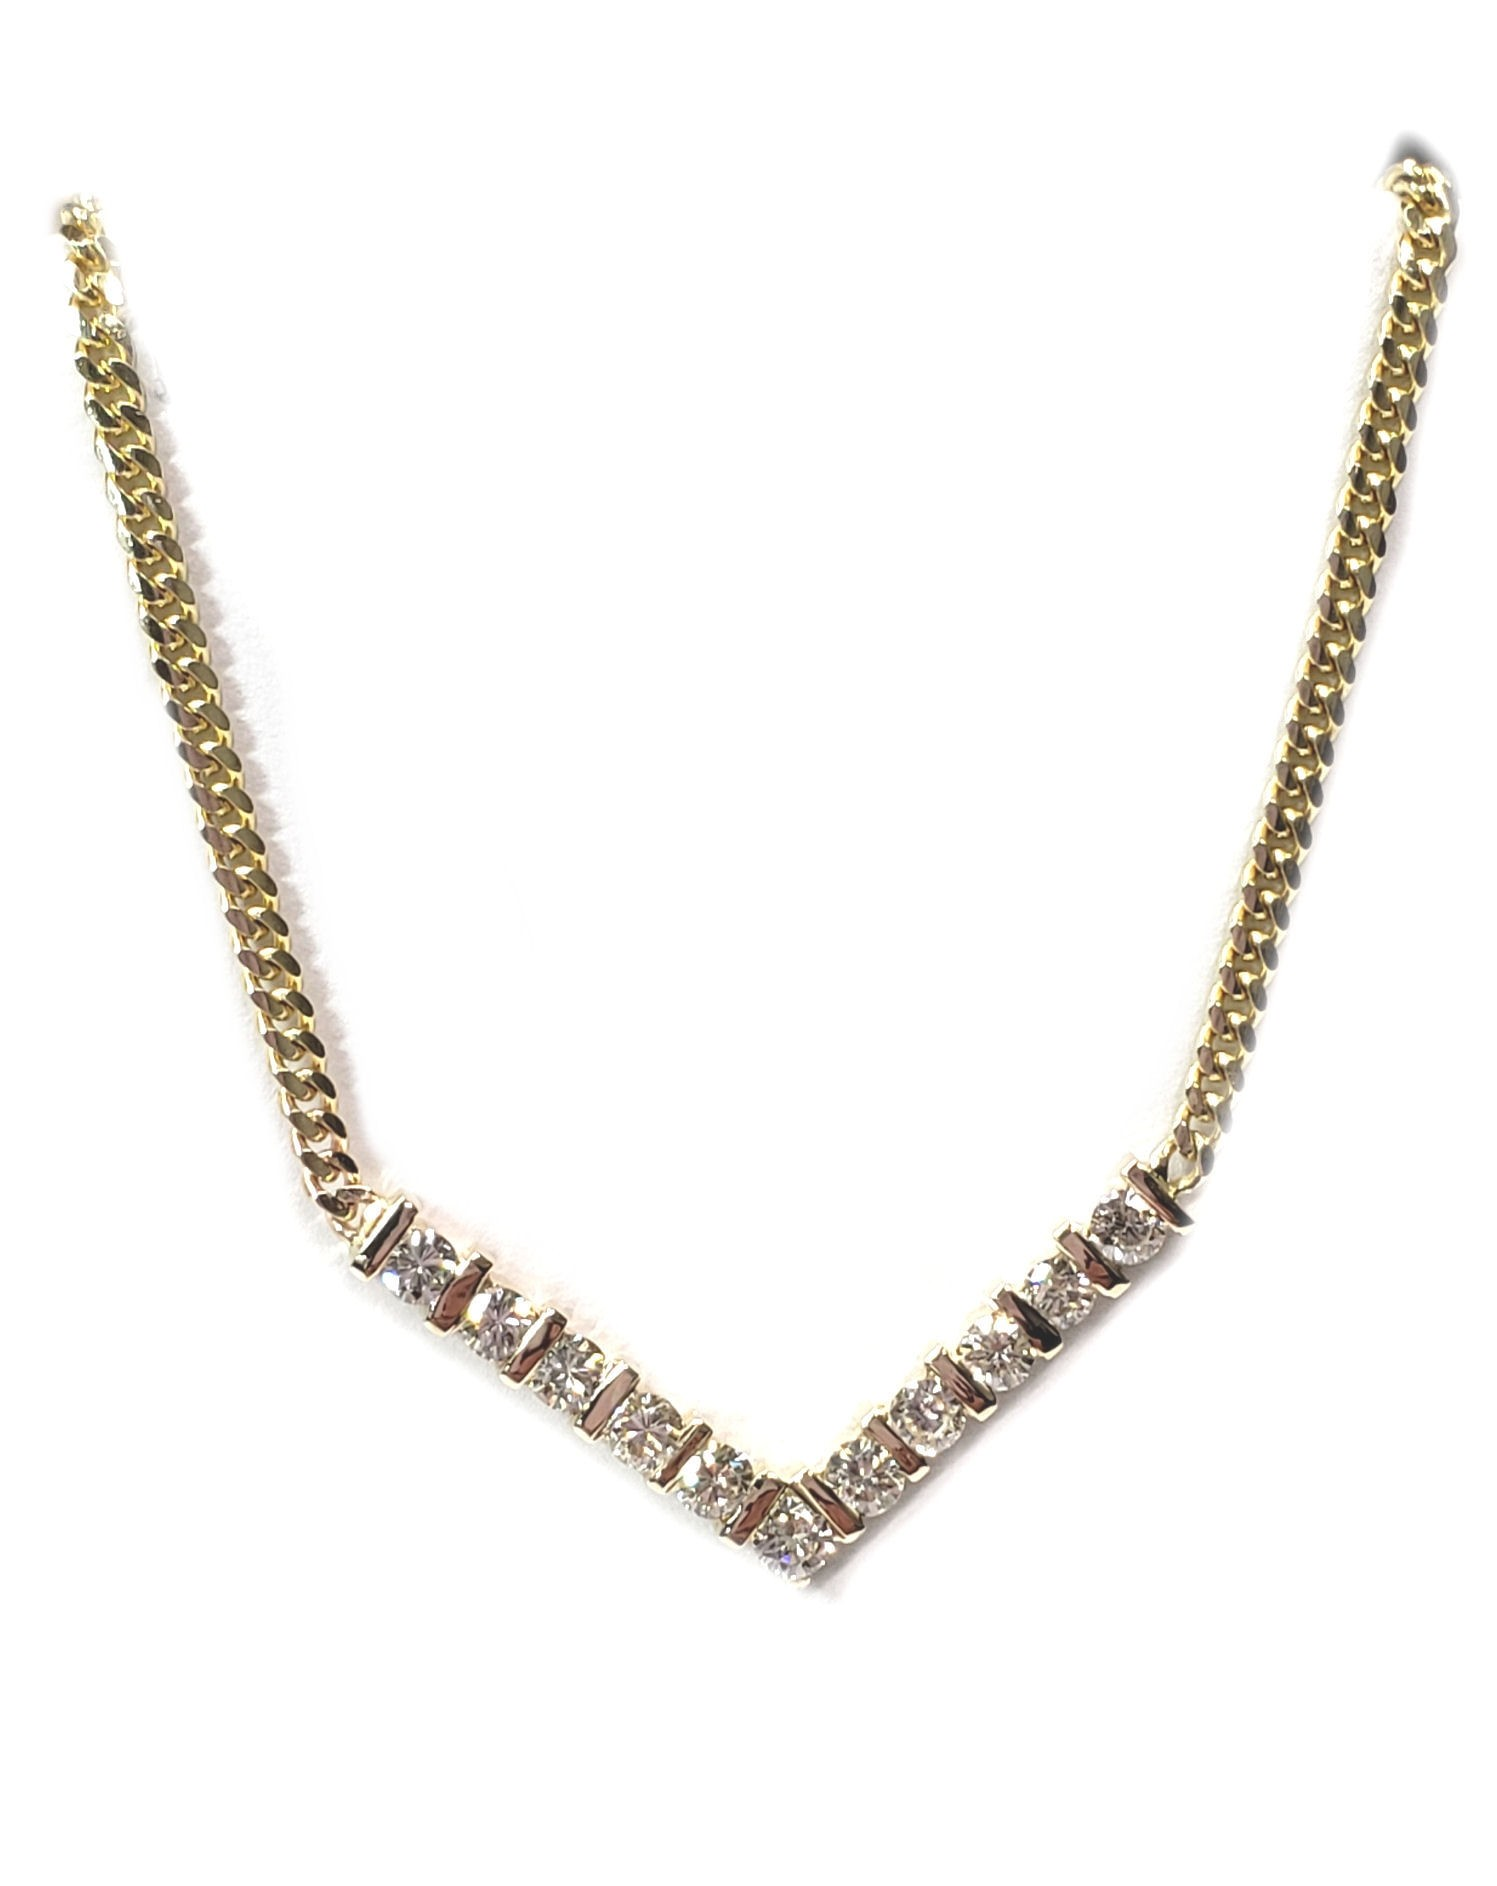 """Diamond """"V"""" Chanel Set Necklace 1.54cts. in 14kt Gold"""